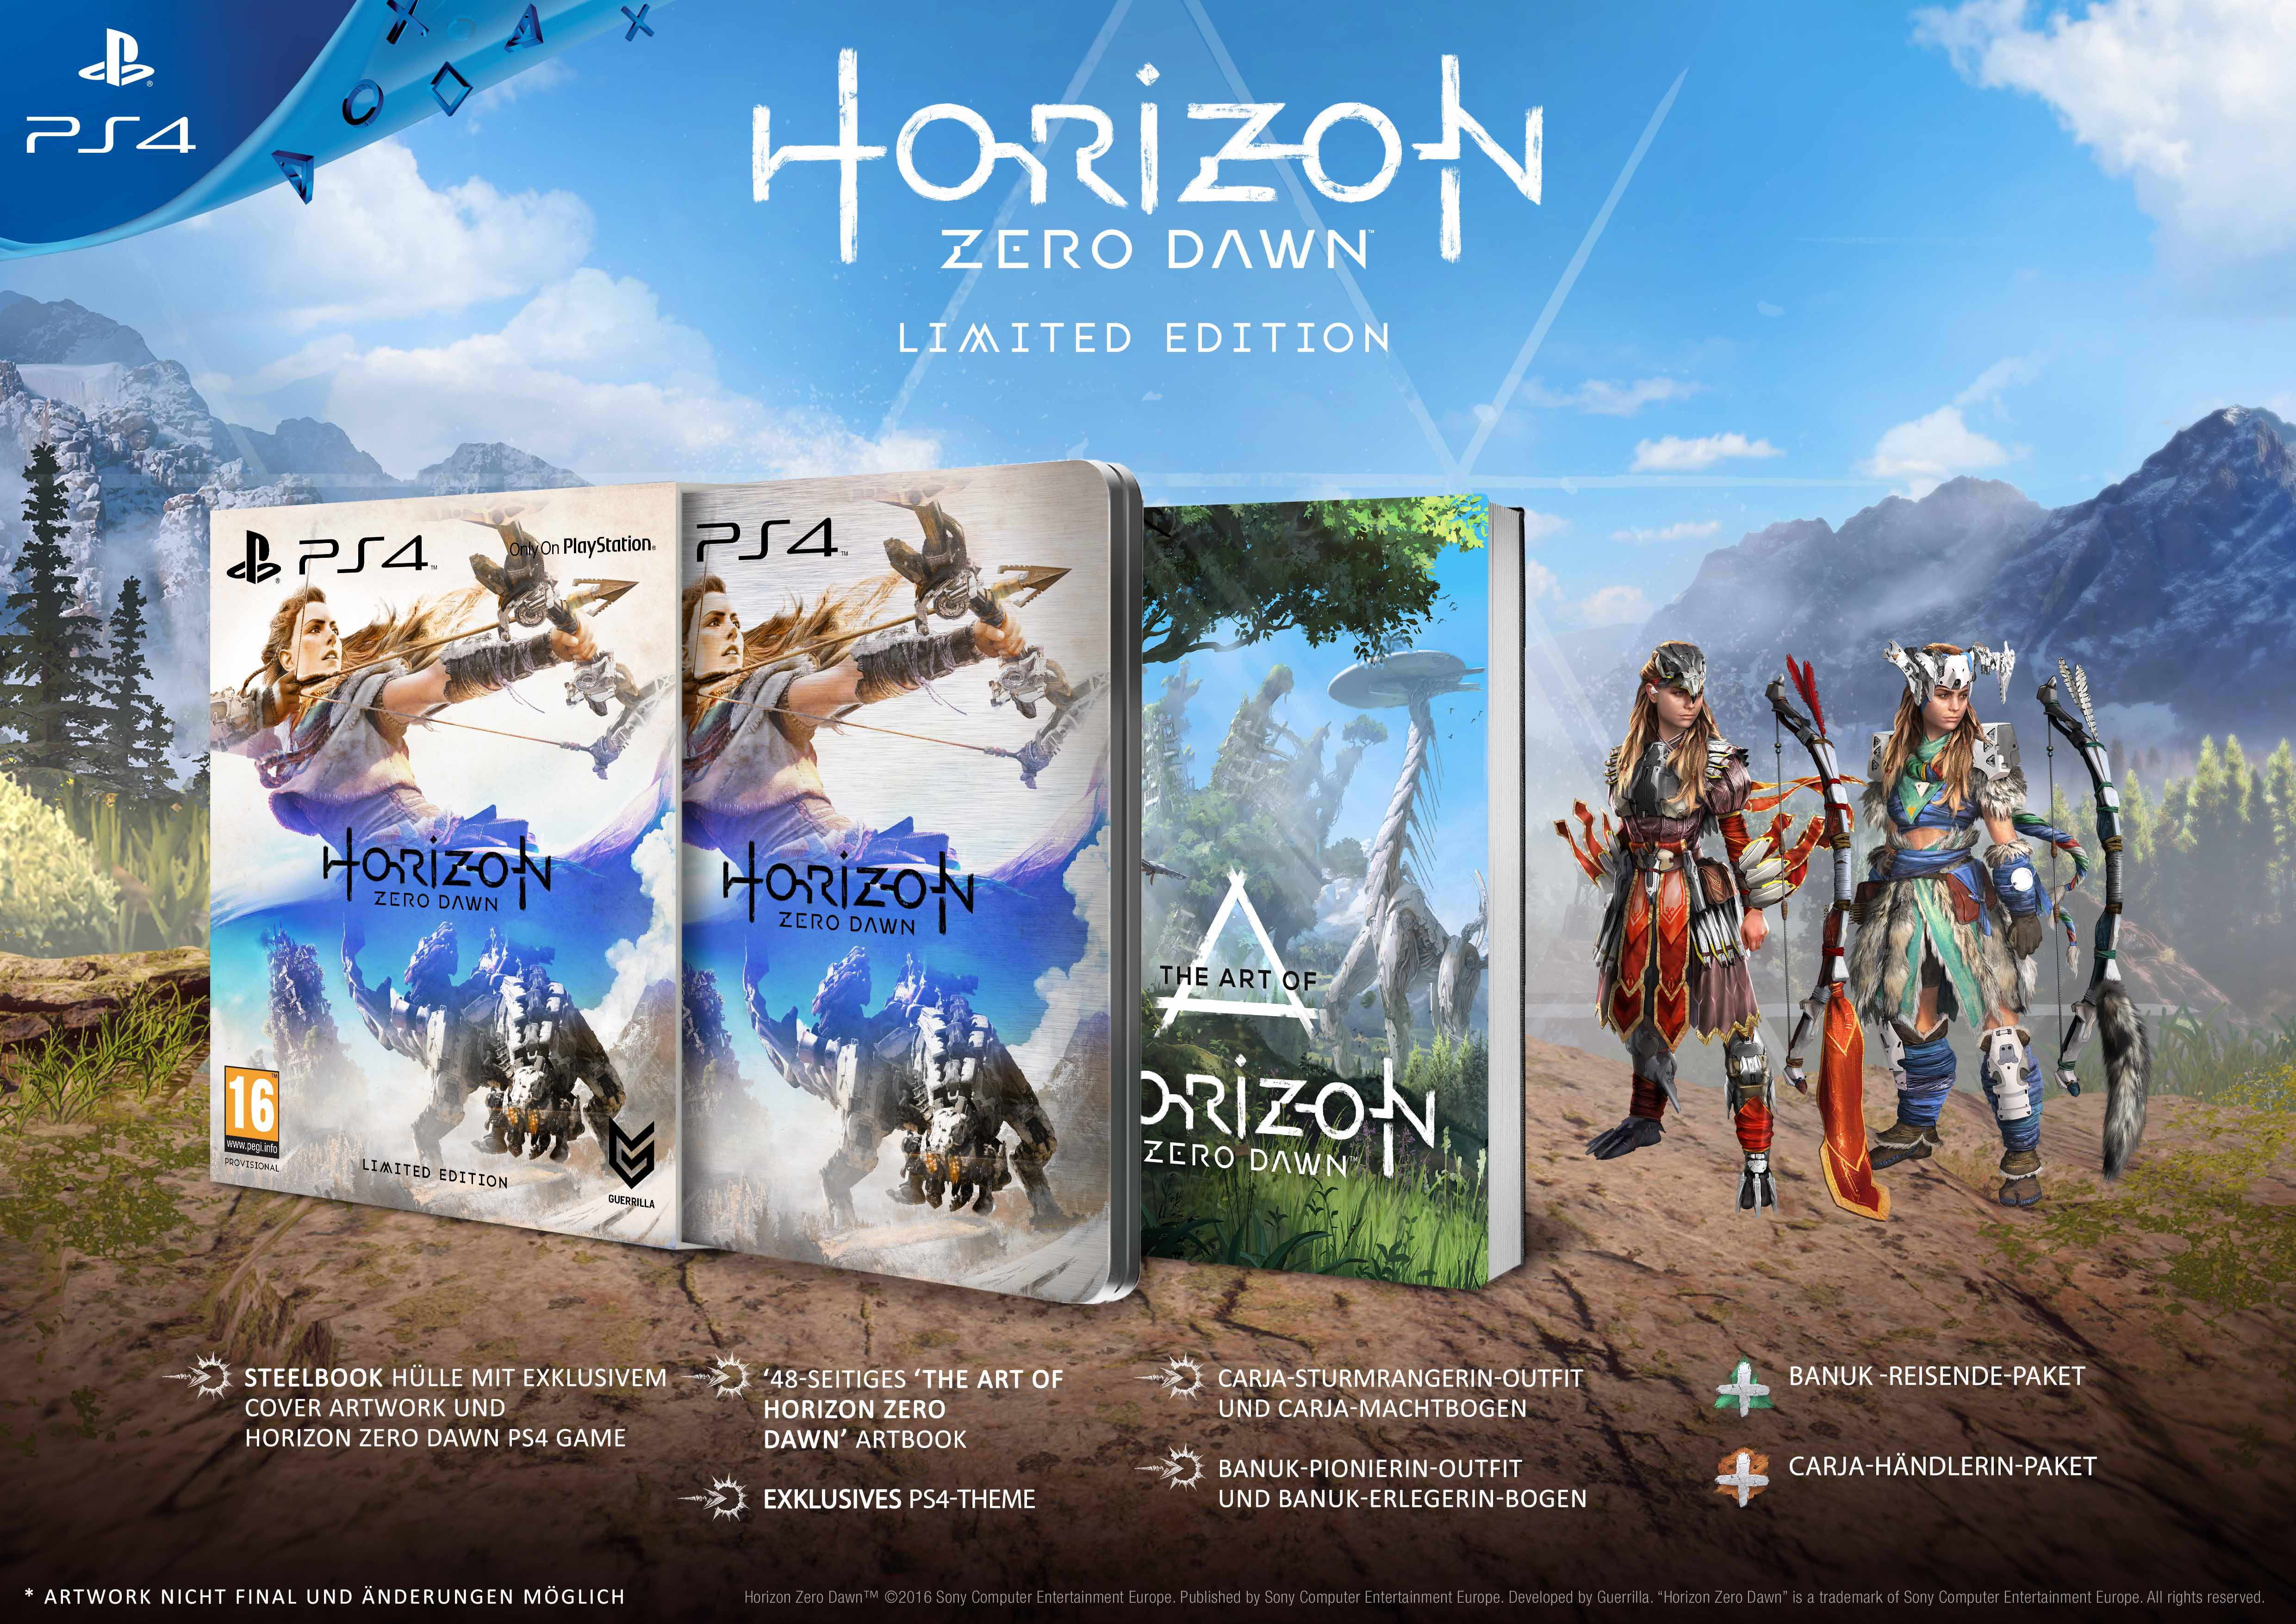 Horizon Zero Dawn Karte Ruinen.Horizon Zero Dawn Limited Edition Playstation 4 Amazon De Games